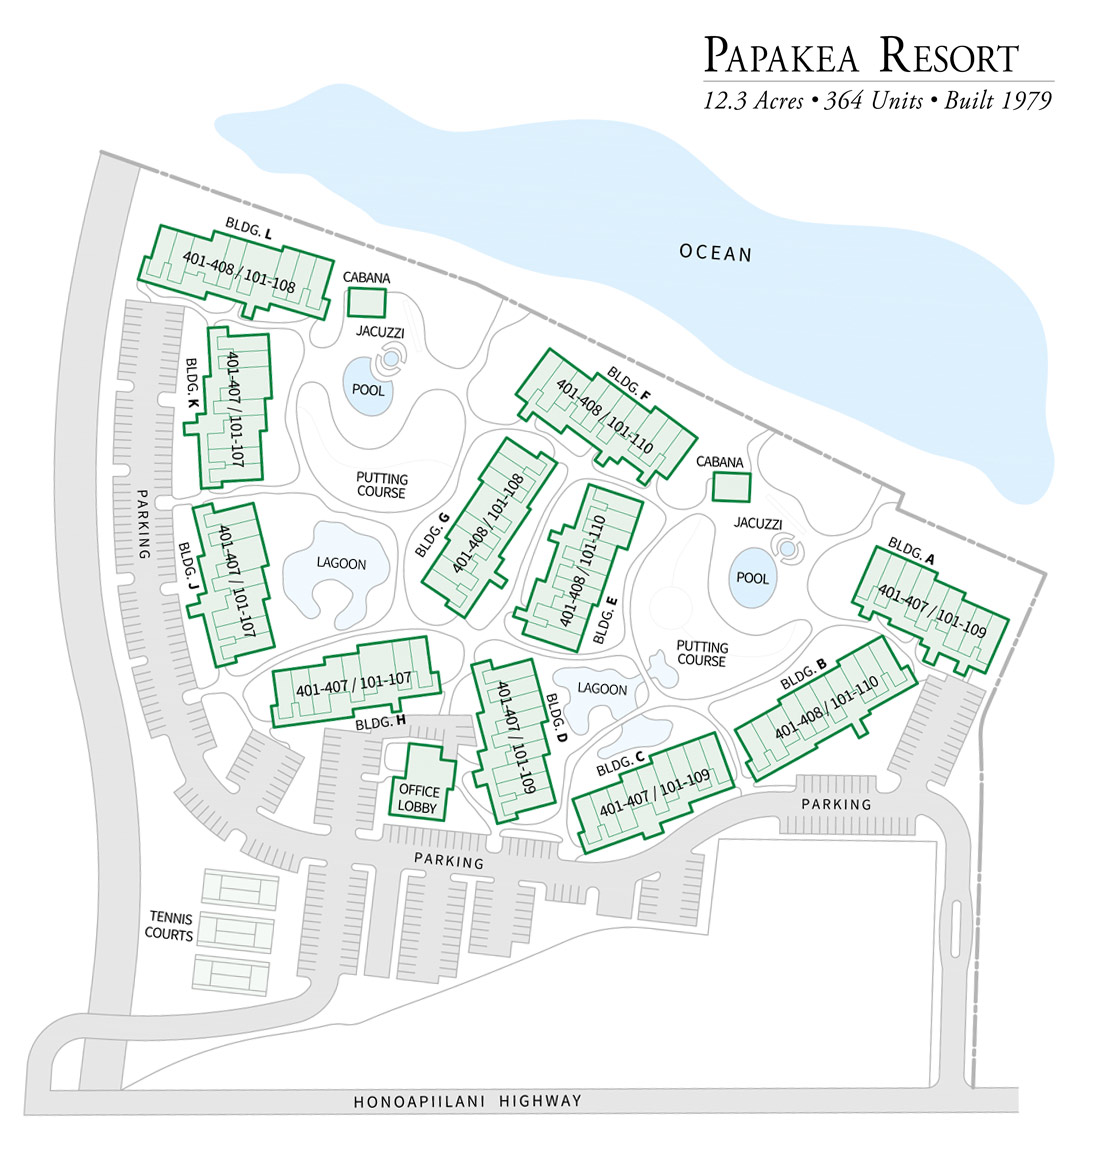 Papakea Resort Property Map